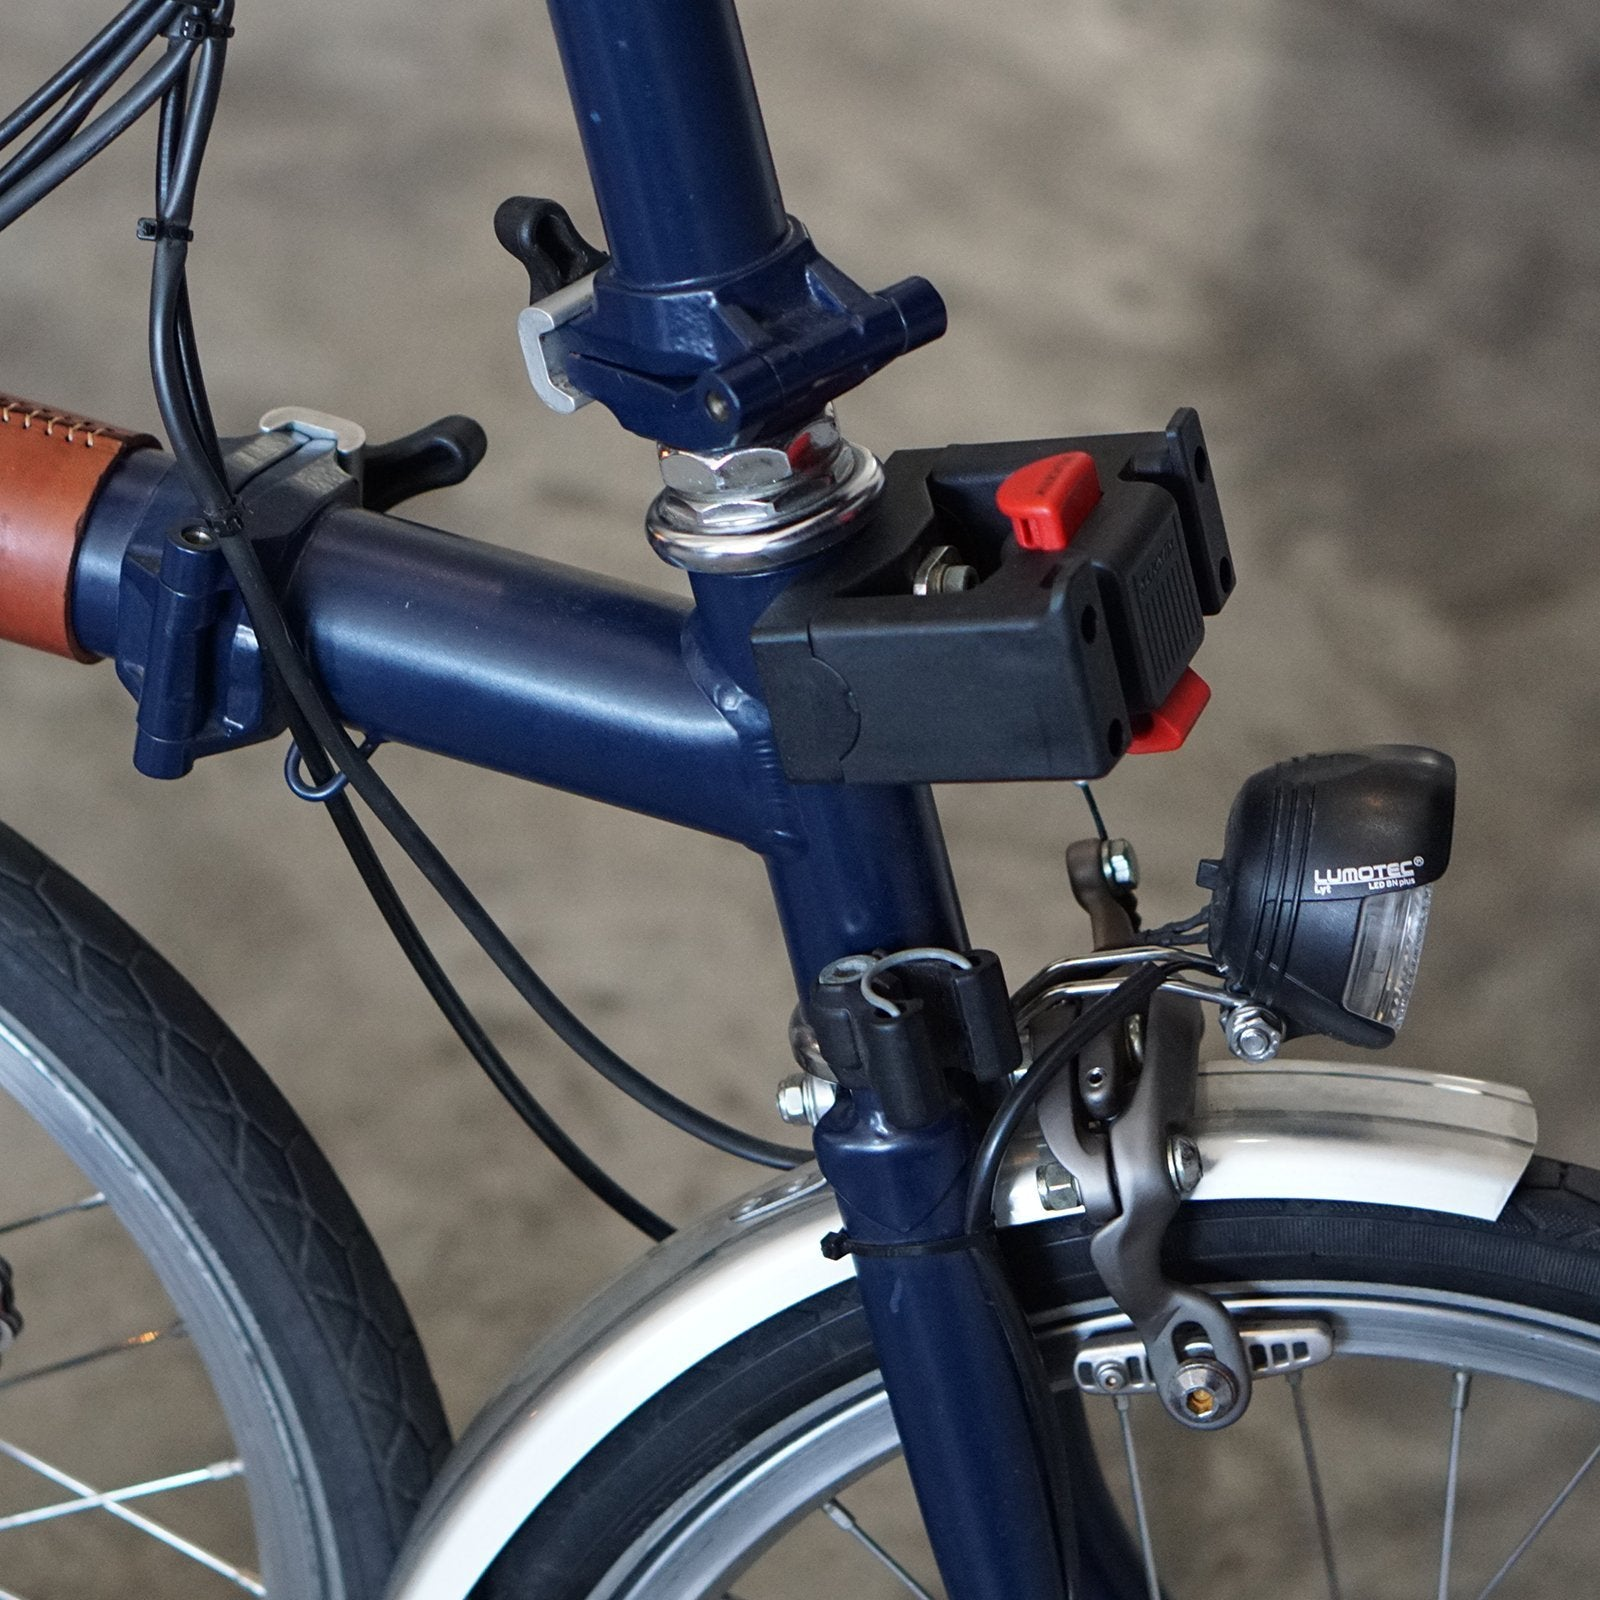 Adaptation d'un support de bagagerie Klickfix sur un Brompton - Page 3 Qr036-modified-klickfix-adapter-for-brompton-head-tube-vincita-co-ltd-accessories-3688978415685_1800x1800